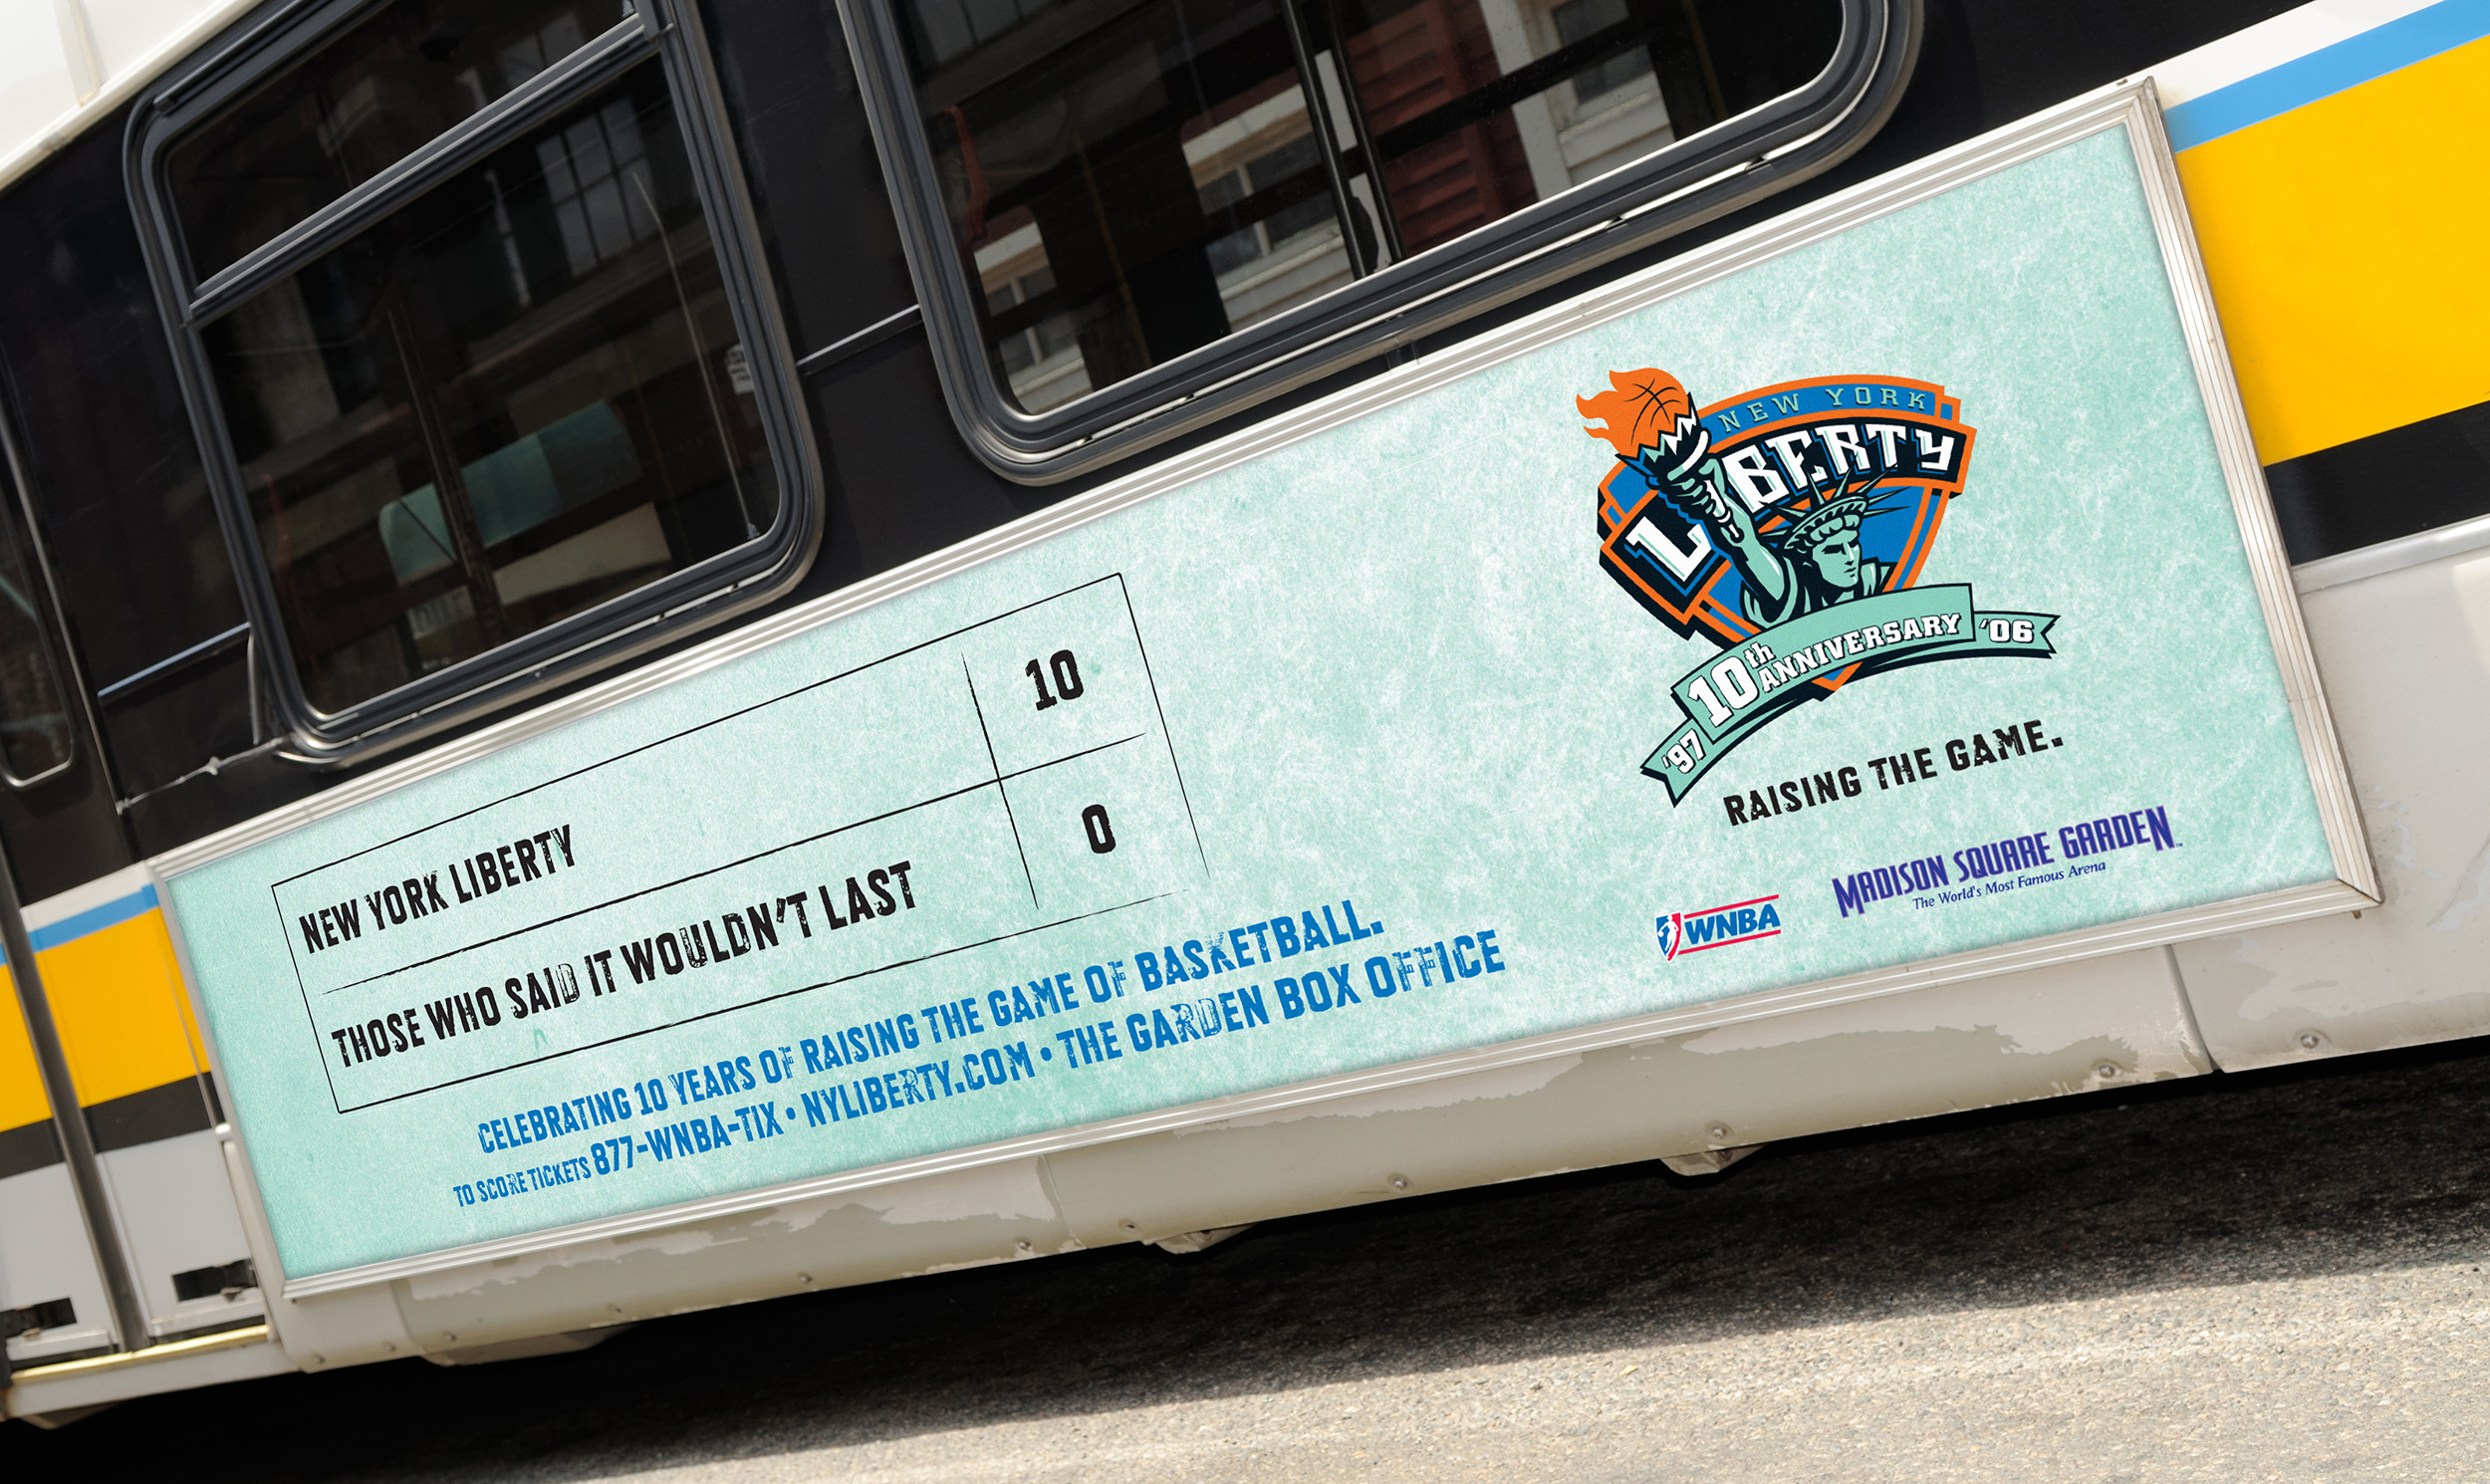 advertising_newyorkliberty_bus_side.jpg